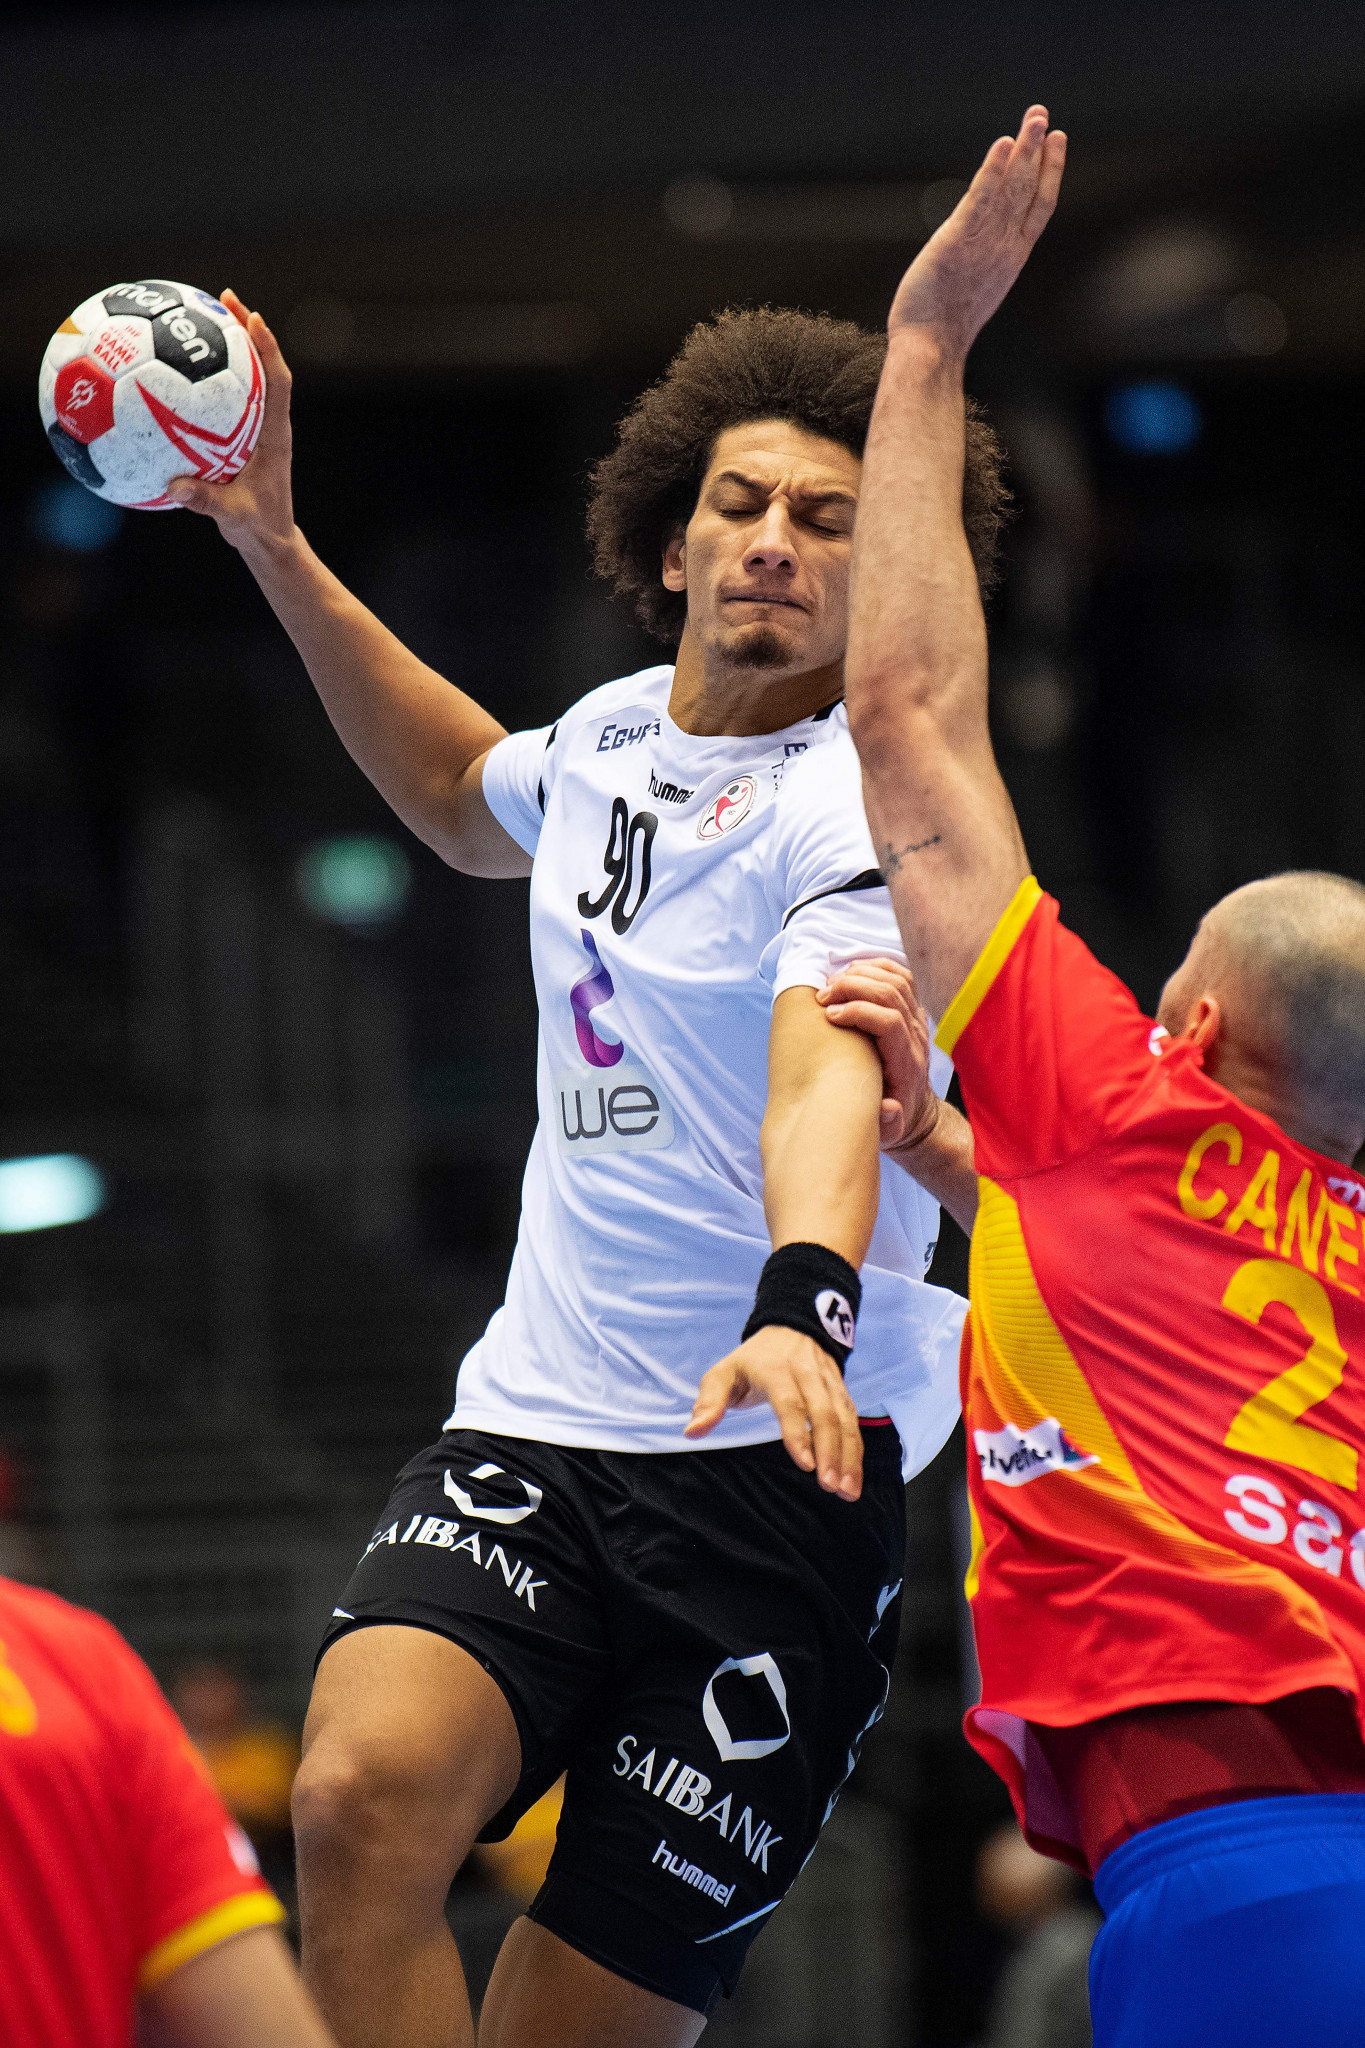 Egypt have beaten hosts Tunisia to win the African Men's Handball title and a Tokyo 2020 place ©Getty Images